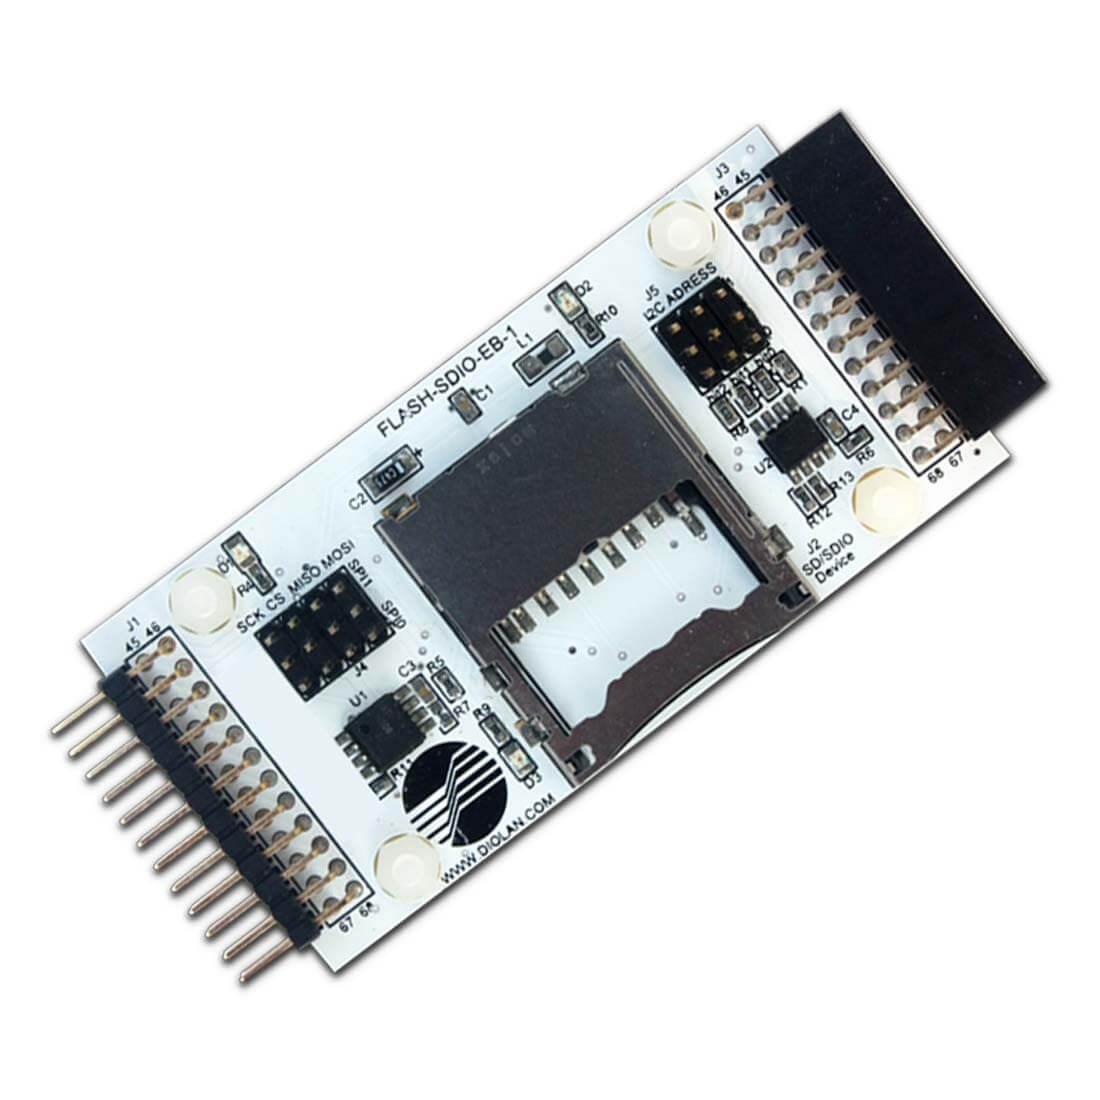 FLASH-SDIO-EB-1 SDIO/SD Card + I2C/SPI Memories Extension Board